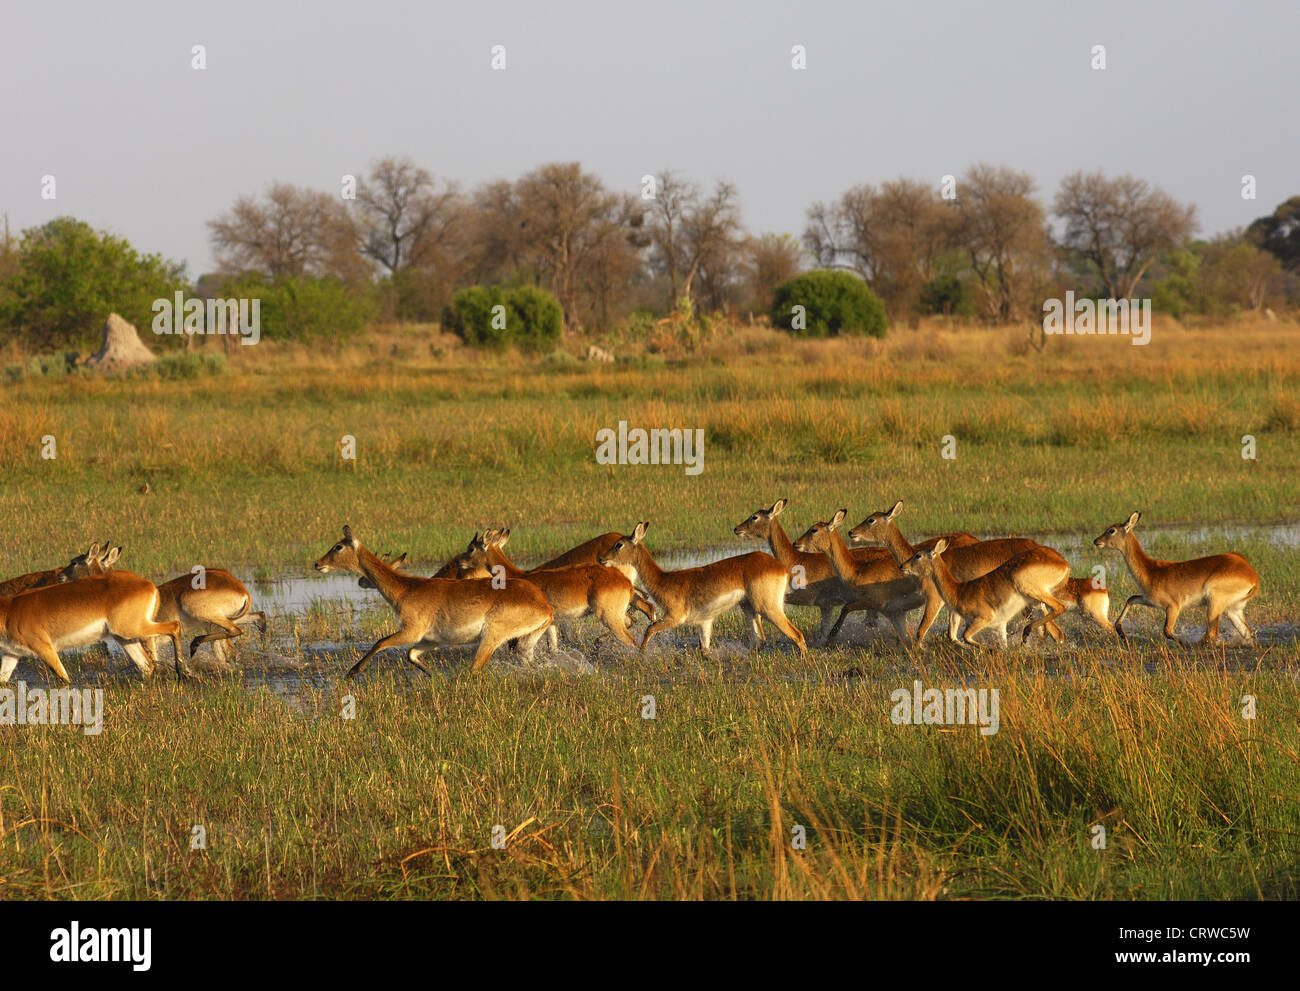 A herd of Southern Lechwes - Stock Image